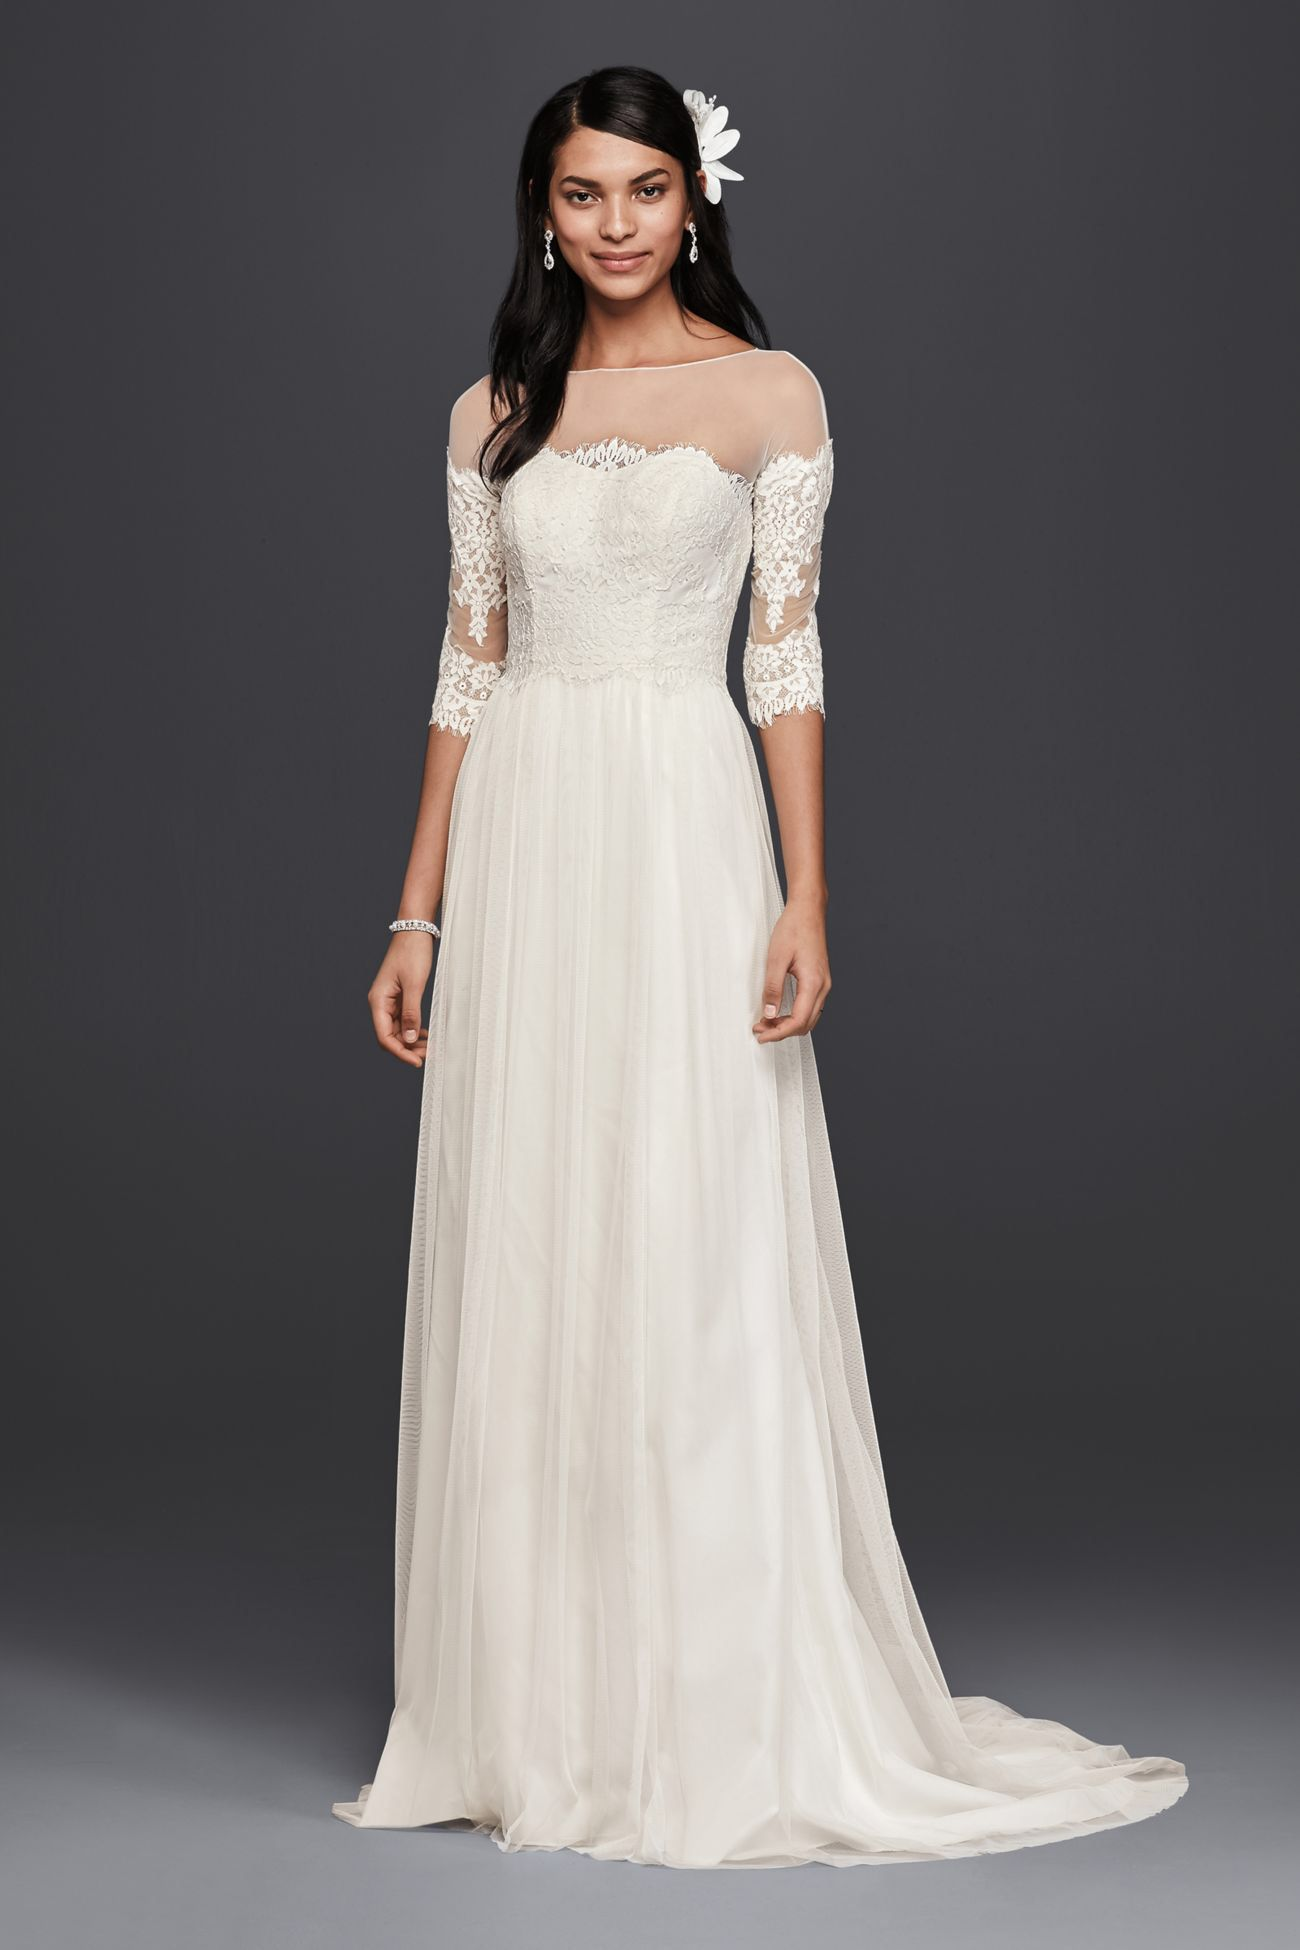 My New Favorite Www Davidsbridal Com 10681819 Petite Wedding Dress Davids Bridal Wedding Dresses Wedding Dresses Lace